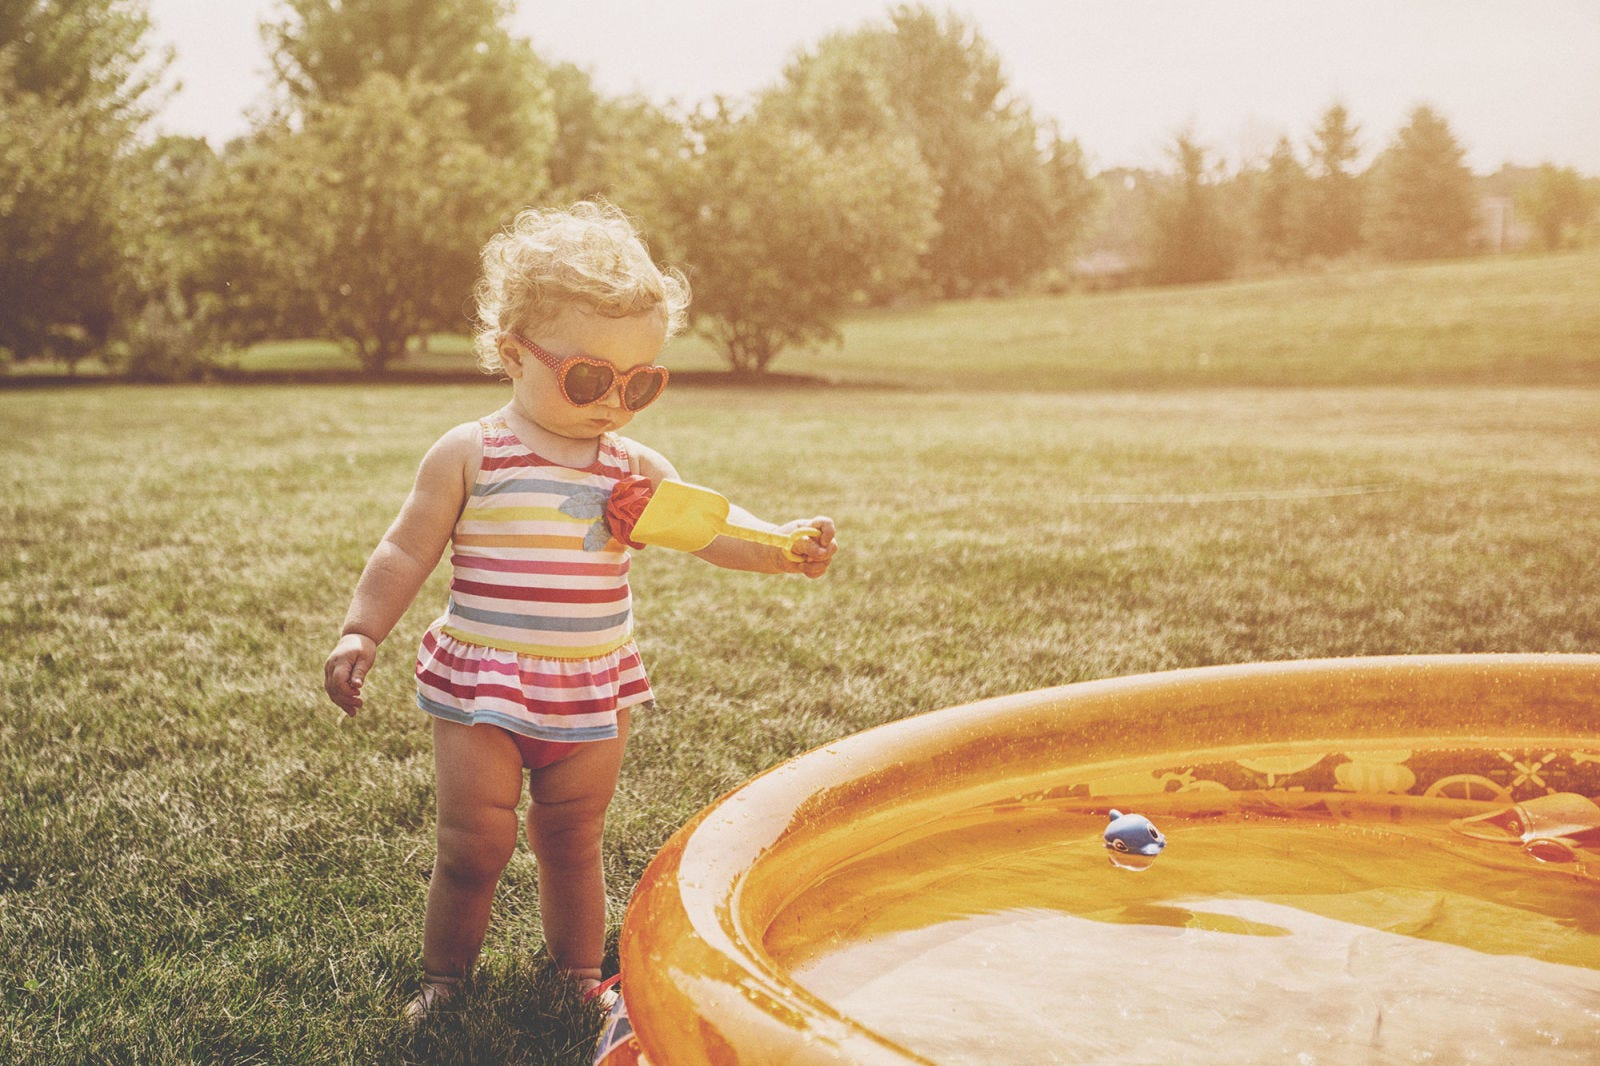 People in nature, Photograph, Child, Yellow, Water, Play, Toddler, Fun, Grass, Sunlight,